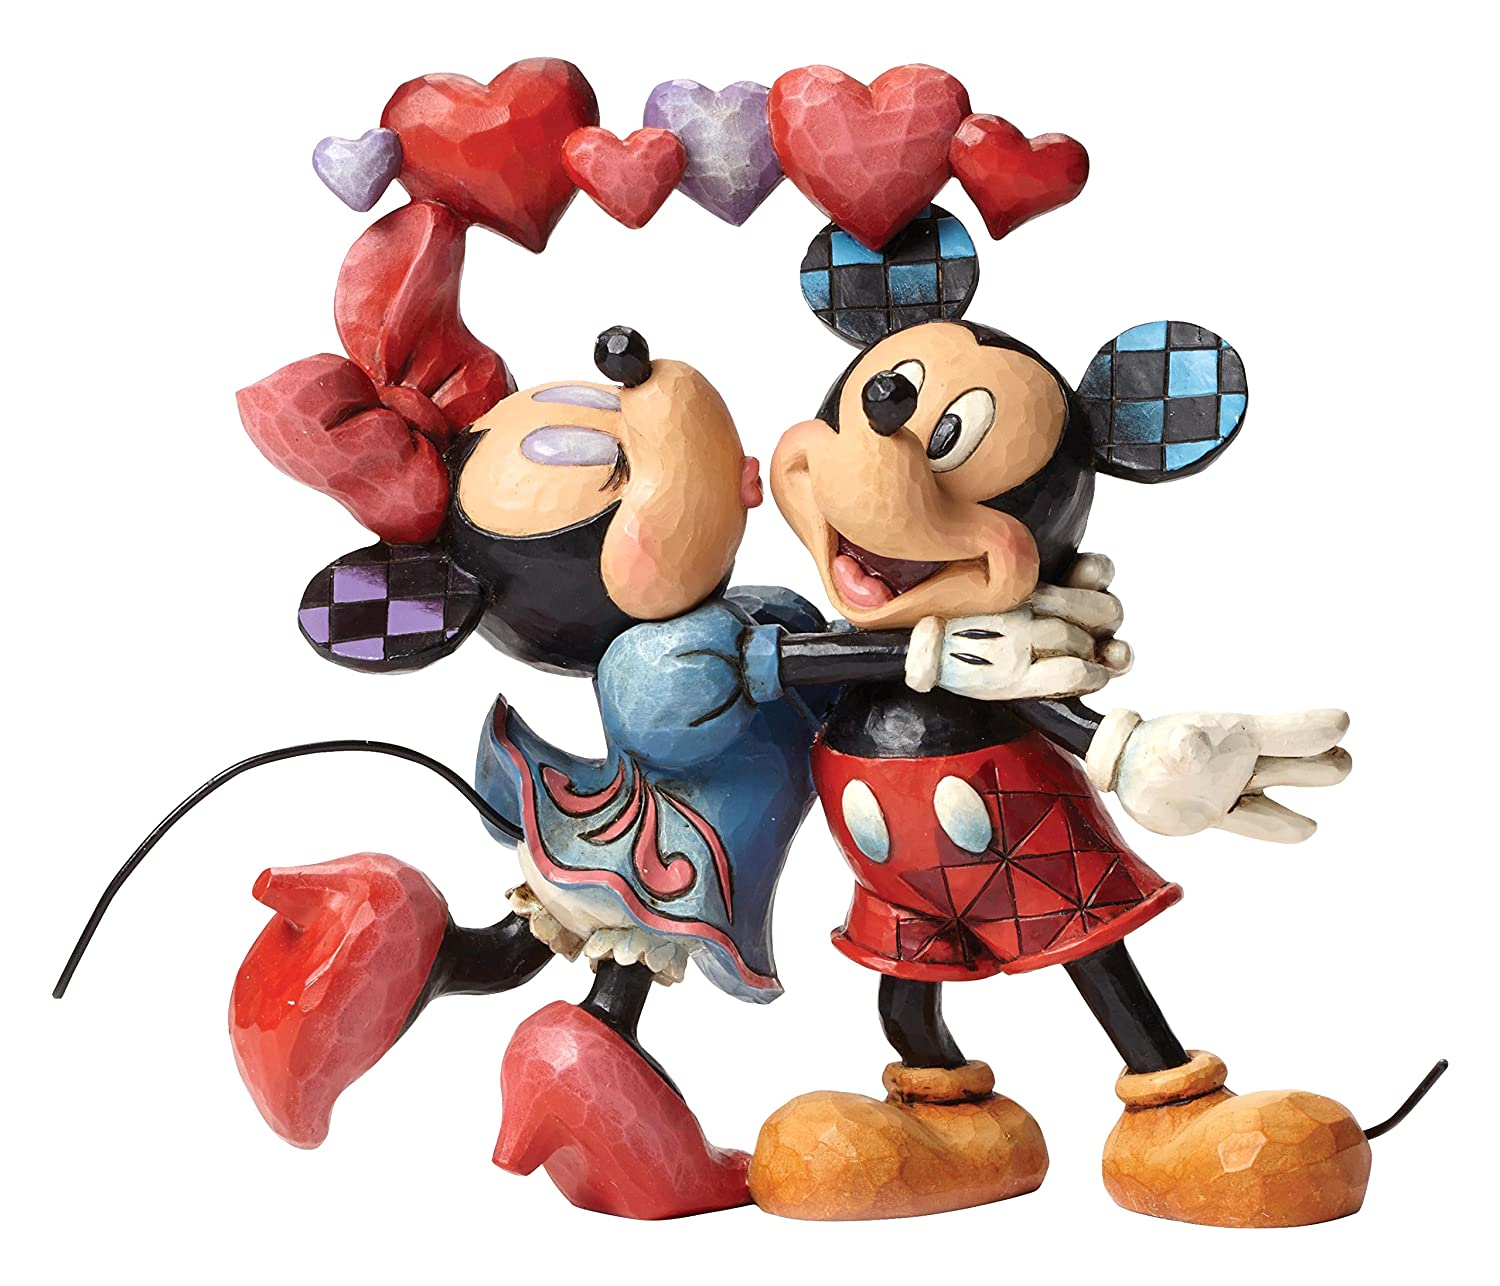 Enesco Jim Shore Disney Love is in The Air Mickey and Minnie Figurine